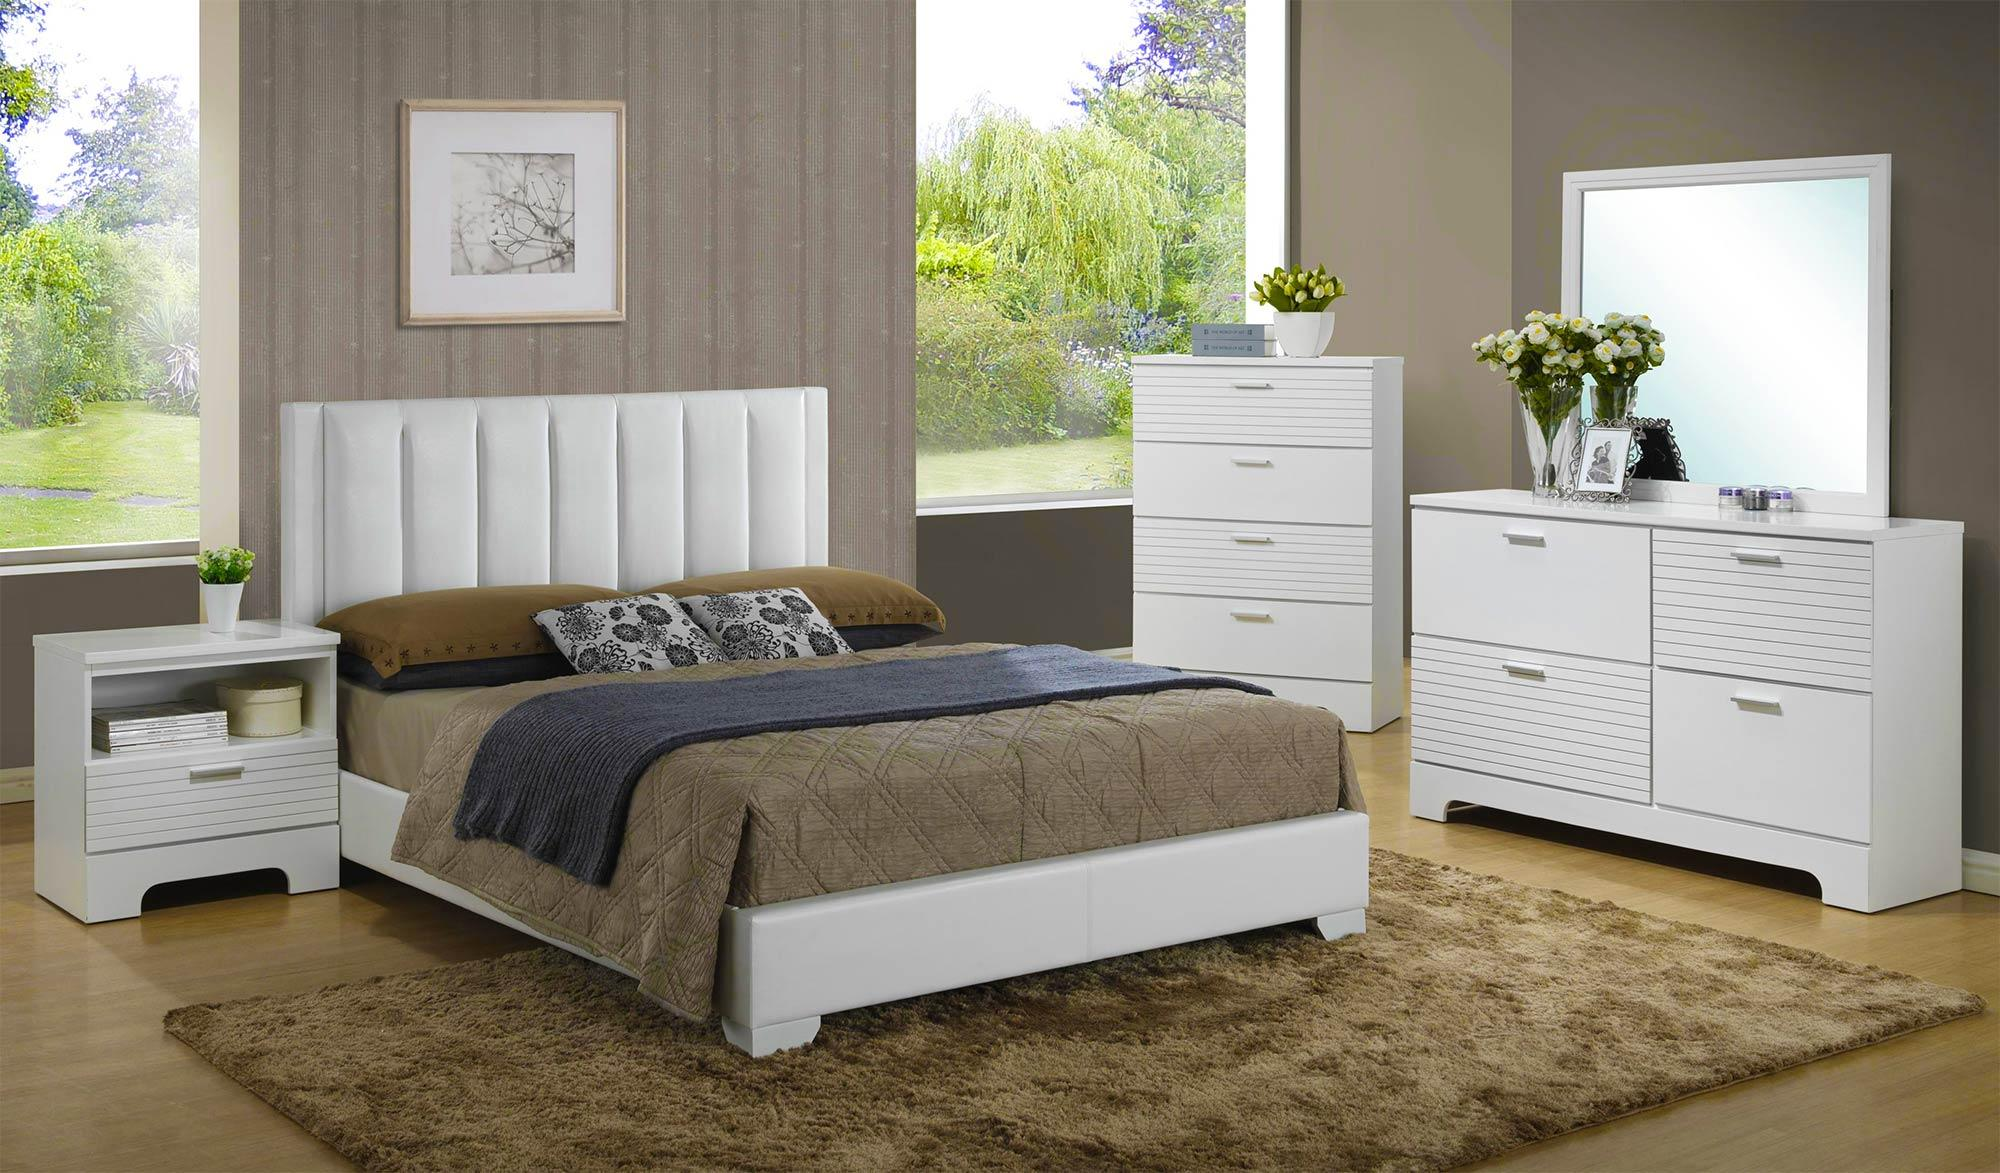 Lifestyle Sami 4-Piece Queen Bedroom Set - Item Number: C3333A-Q-4PC